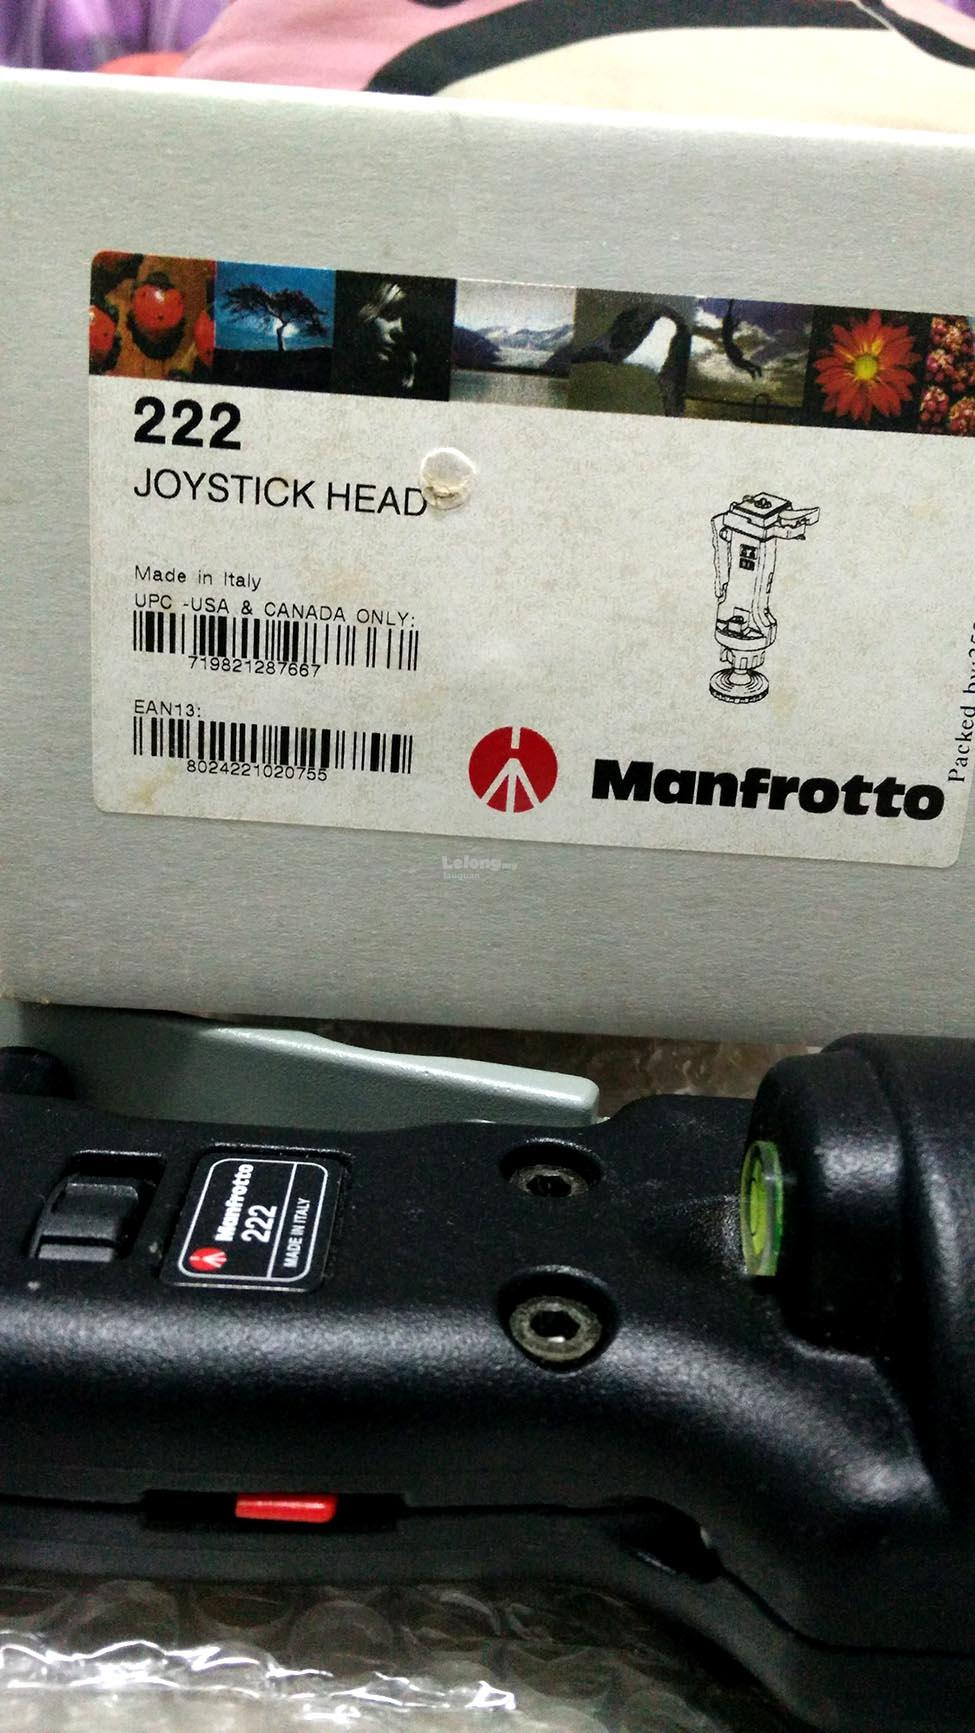 Manfrotto 222 Joystick Action Grip Ball Head